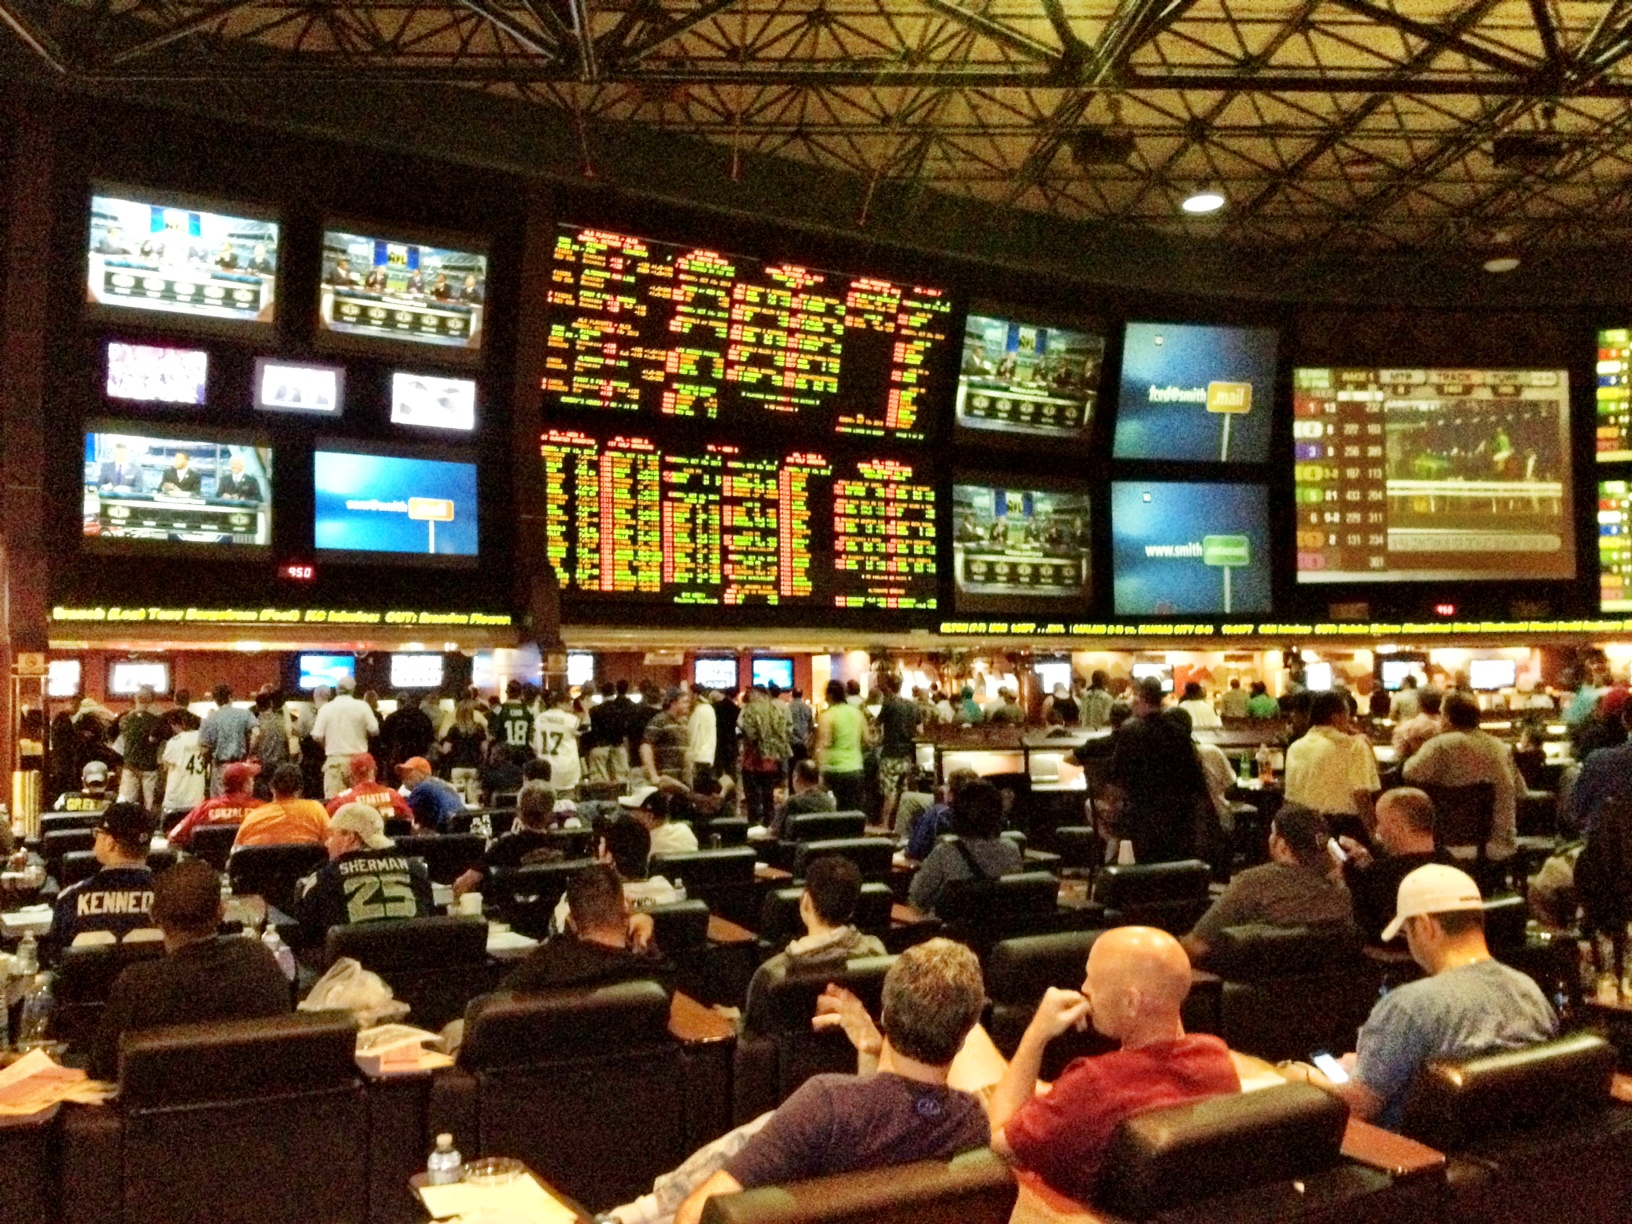 las vegas line superbowl sportsbook wikipedia